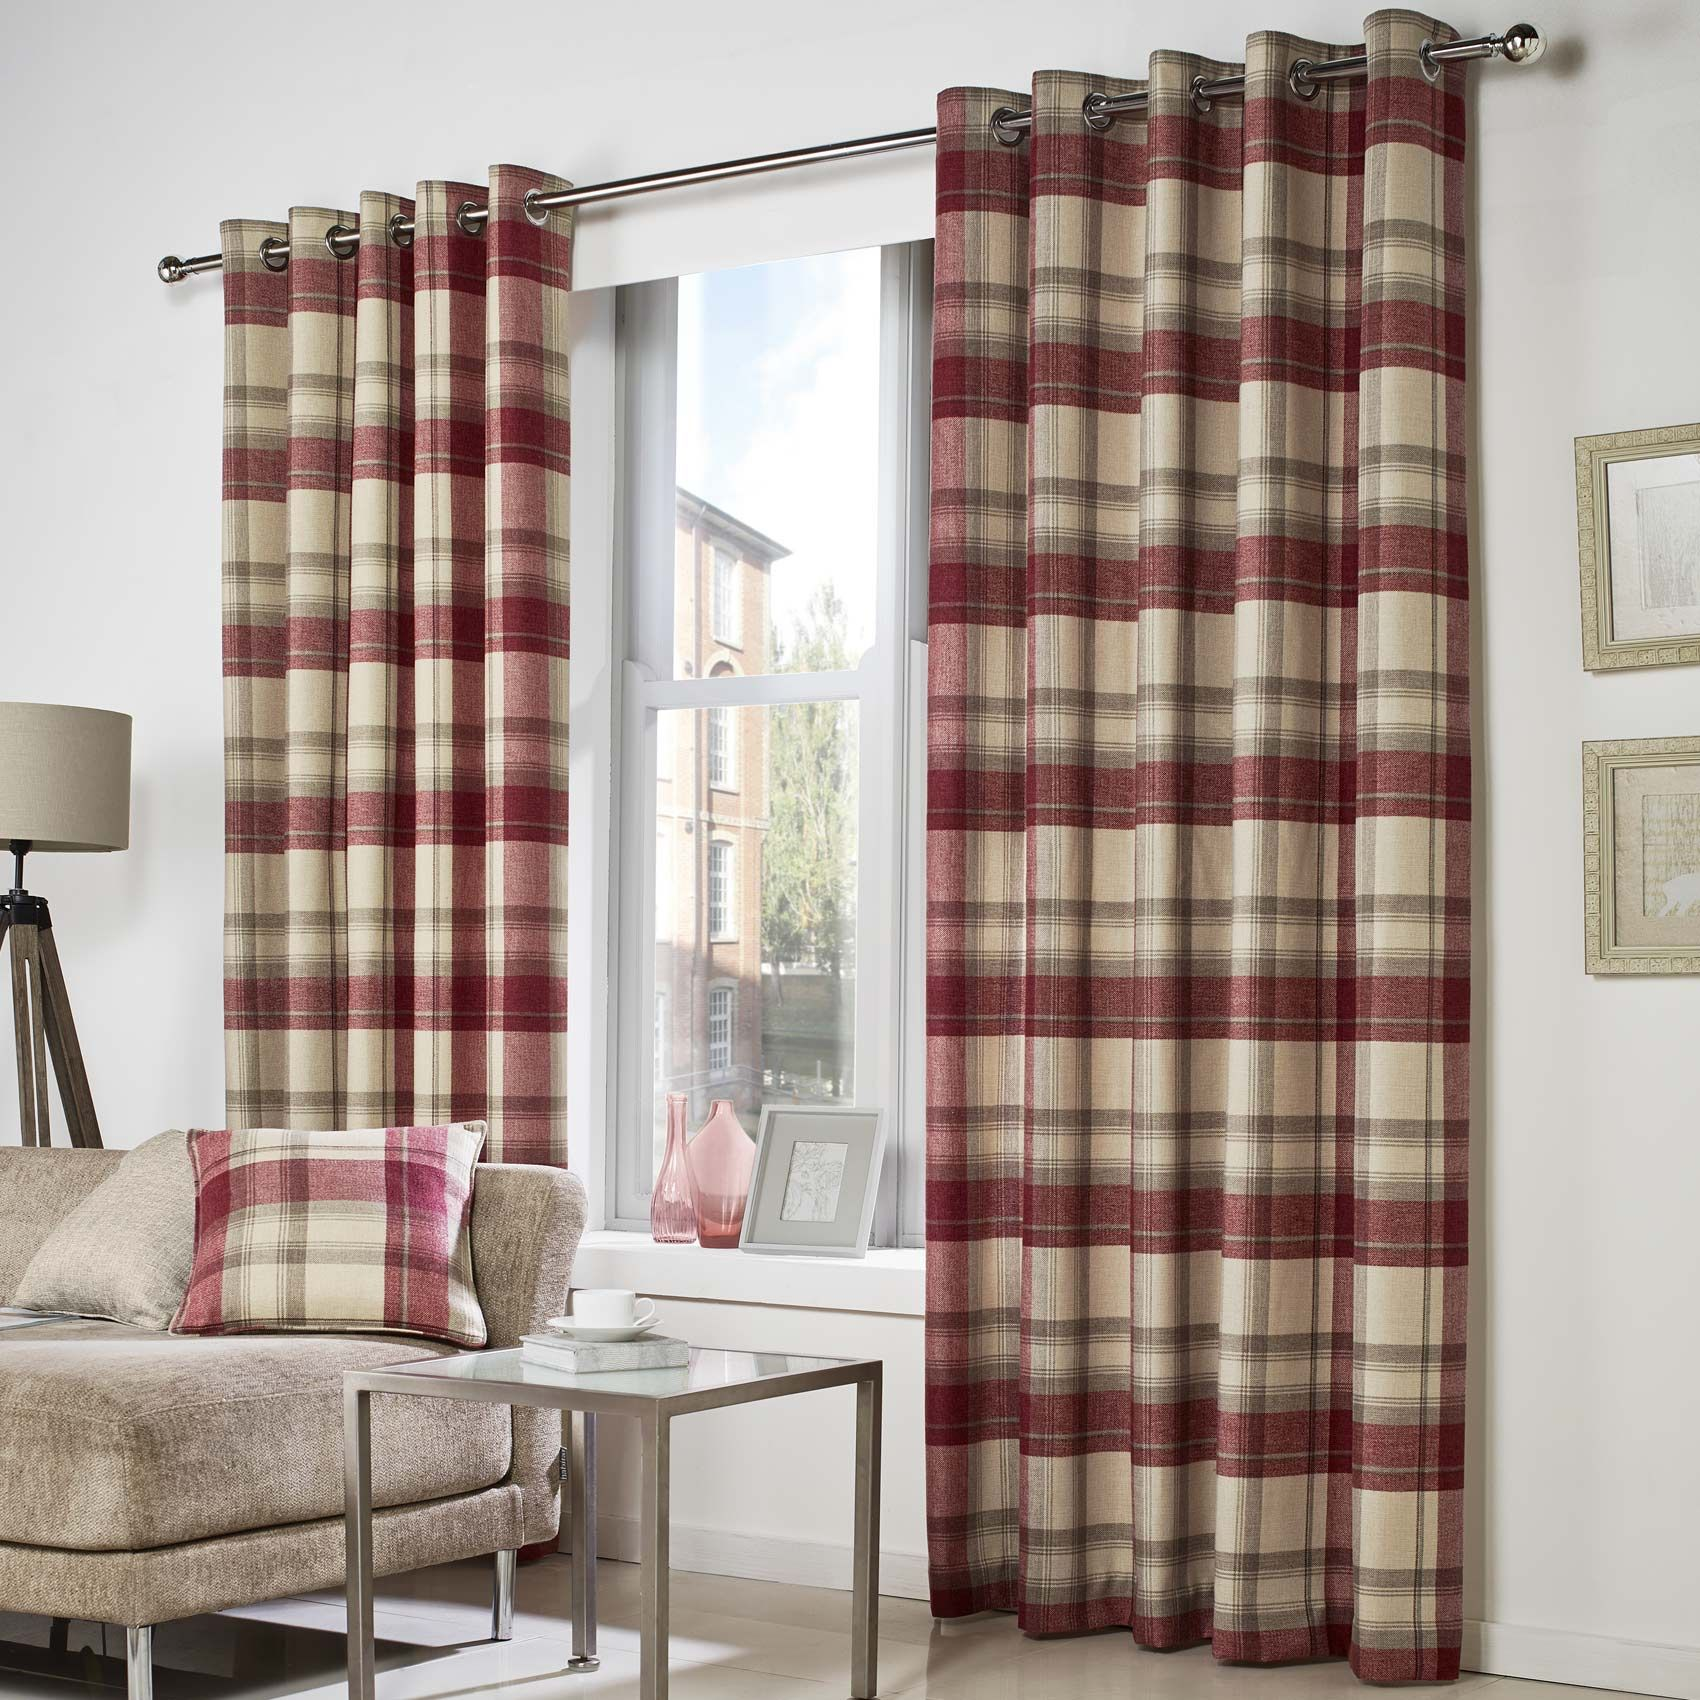 10 Best Red And Grey Living Room Curtains